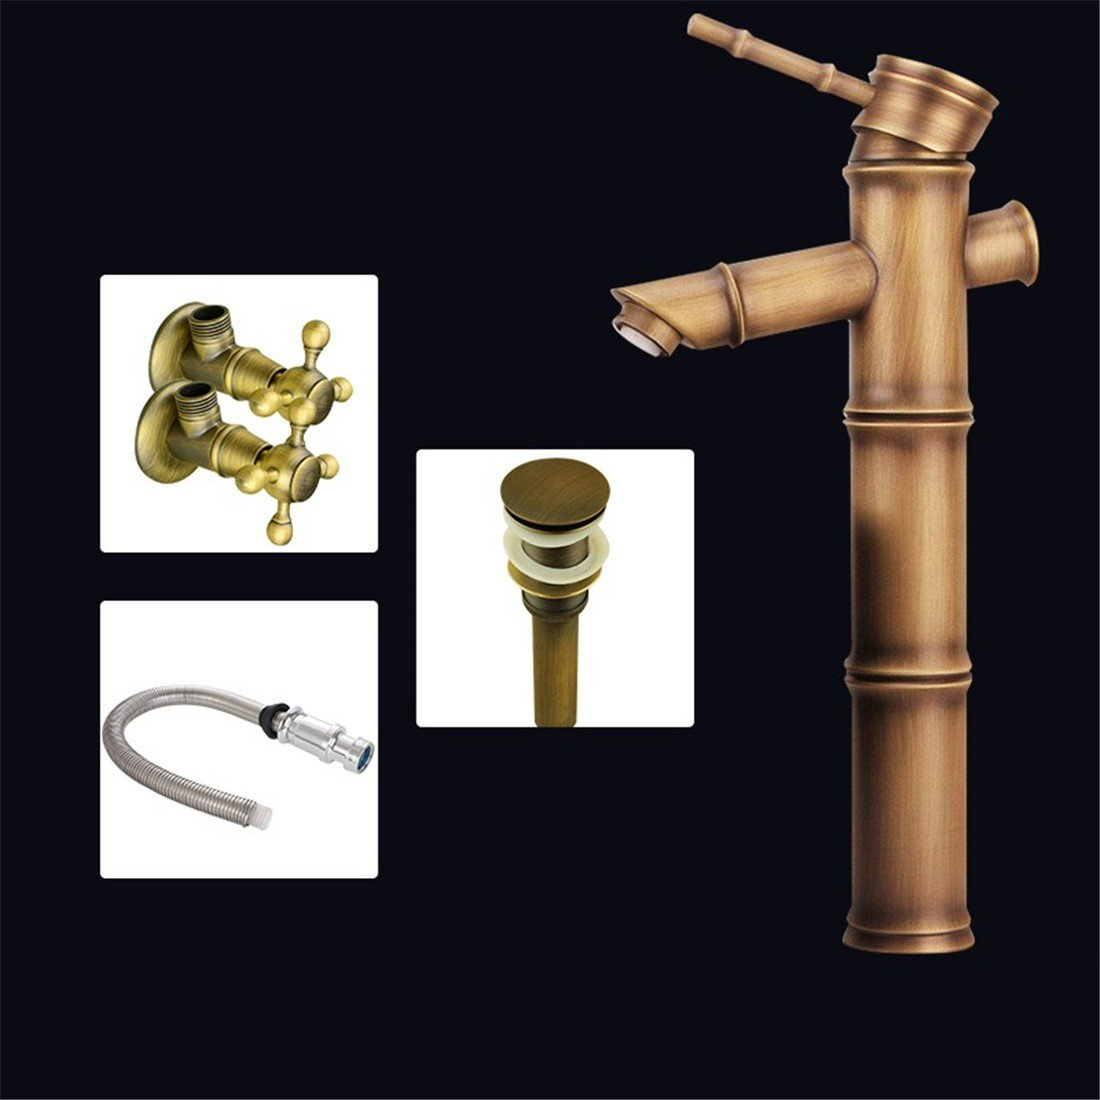 Fbict  European Antique Copper high Bamboo Section Above Counter Basin Faucet Bamboo Faucet hot and Cold Water, Basin Hardware Necessary for Kitchen Bathroom Faucet Bid Tap